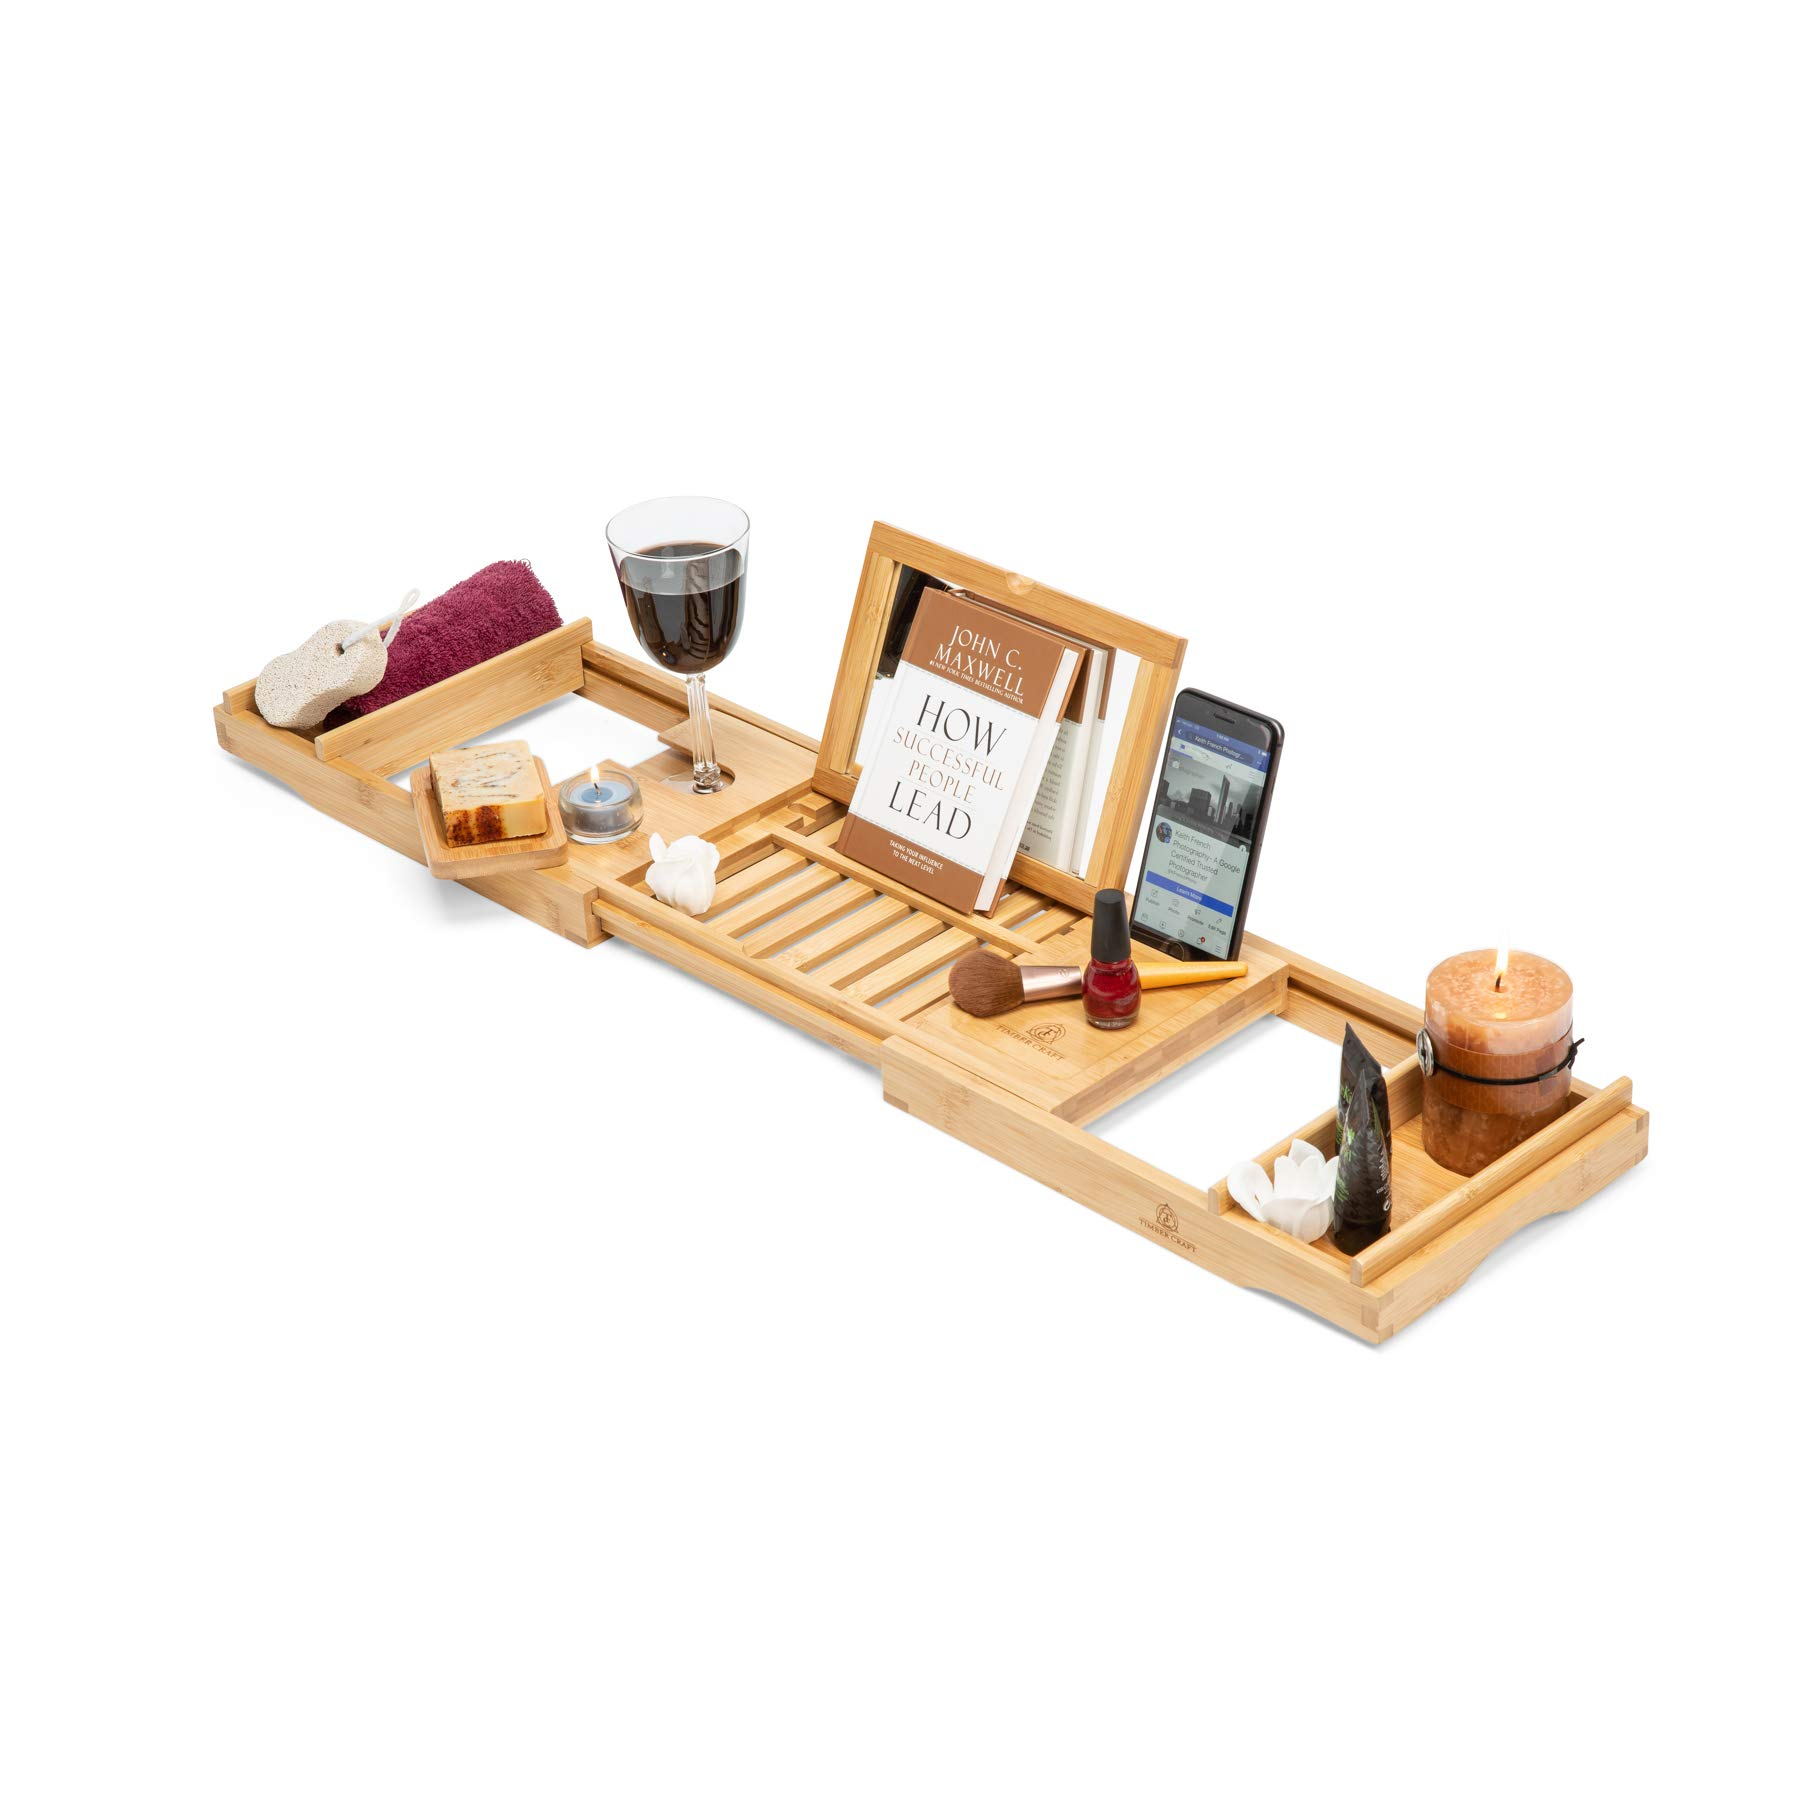 Timbercraft Premium Bamboo Bathtub Caddy Tray with Mirror & Free Soap Dish - Supreme Luxury - Water & Mildew Resistant